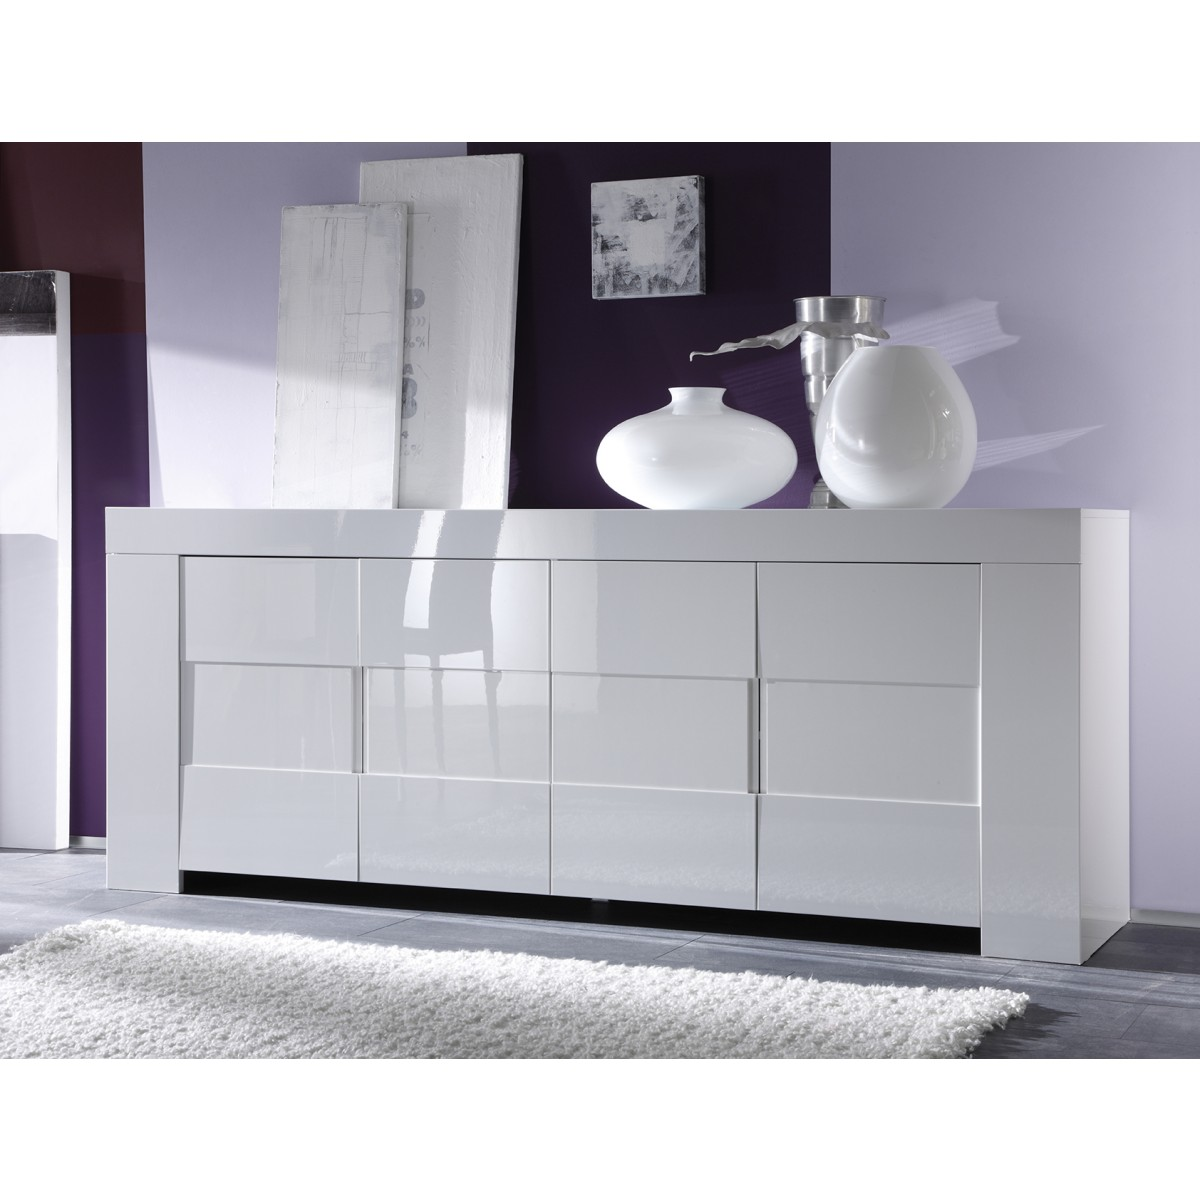 Salle manger blanc laqu buffet 4 portes meuble haut for Sideboard 2 50 m